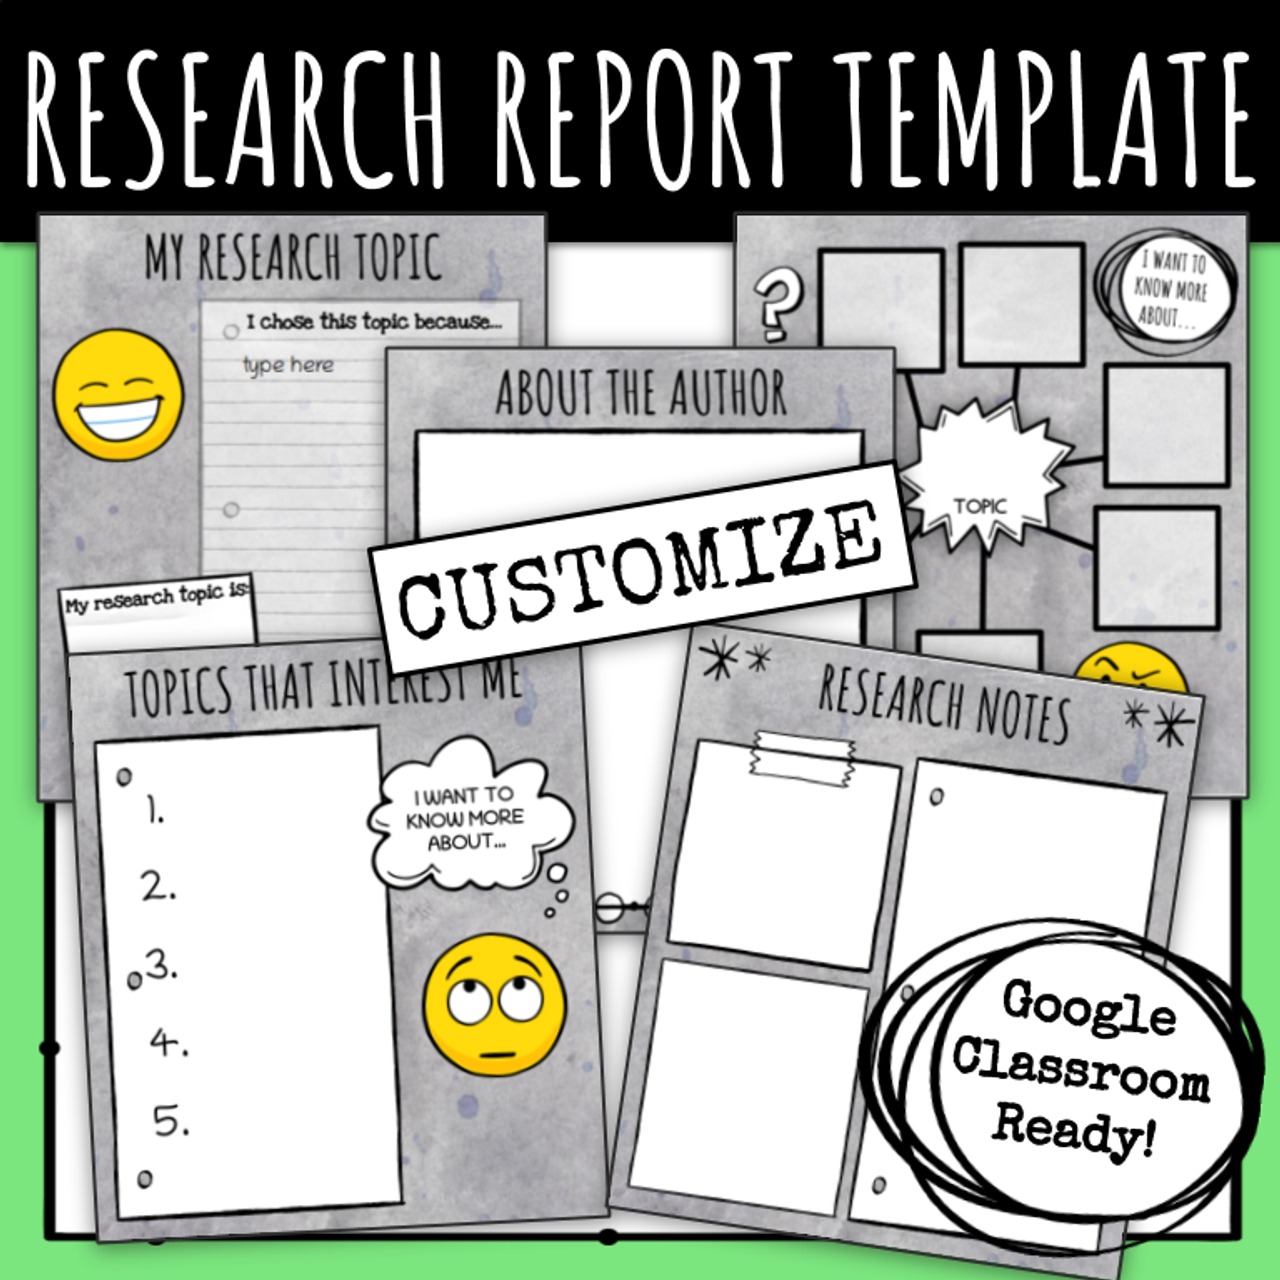 Research Report Template - Emoji Themed (Google Slides)